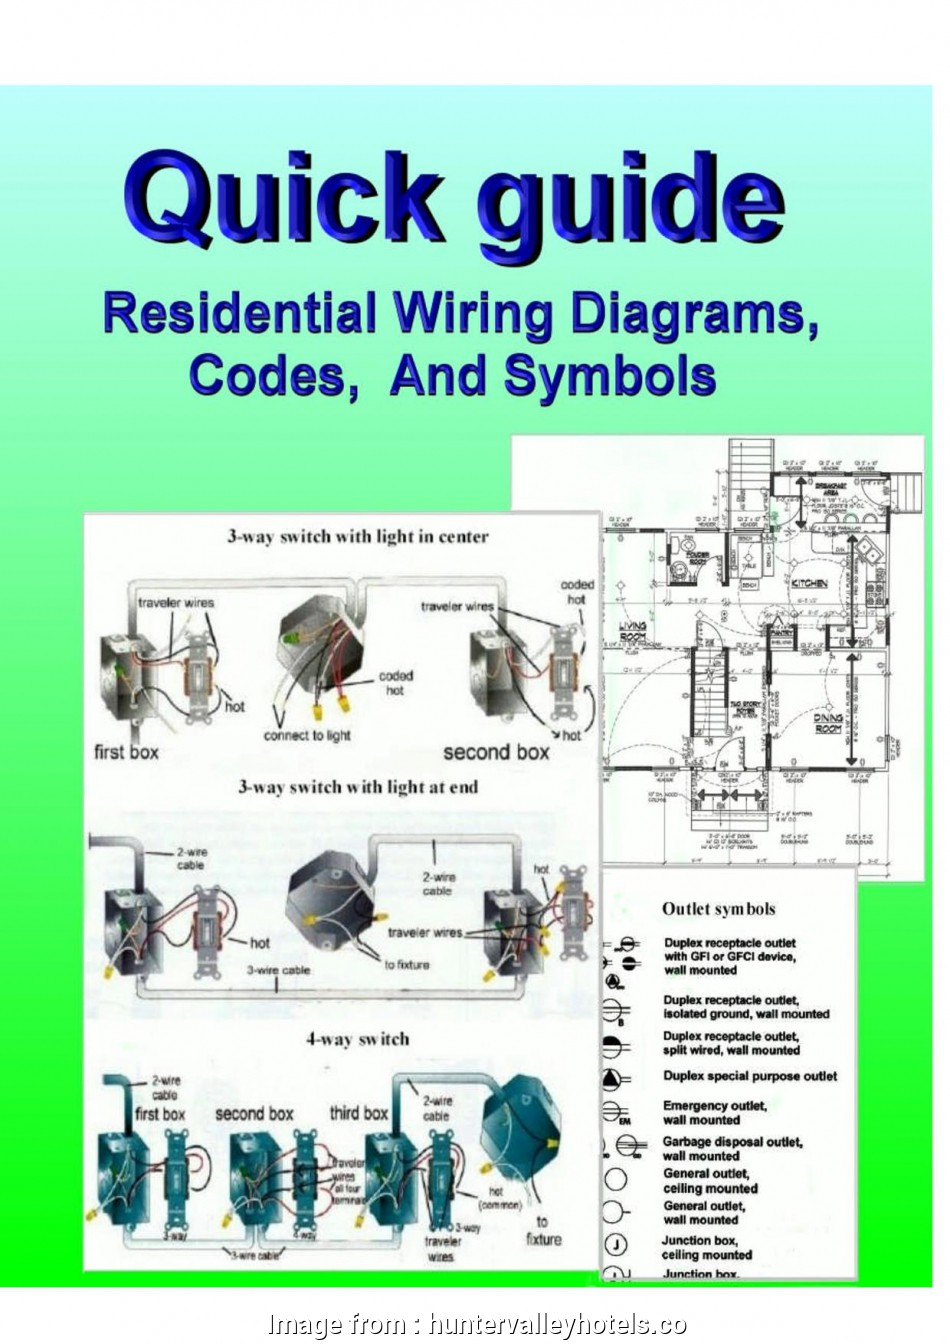 electrical wiring diagram book pdf electrical wiring diagram books electrical wiring diagrams, rh parsplus co electrical house wiring books, in hindi electrical house wiring books free 11 Professional Electrical Wiring Diagram Book Pdf Collections